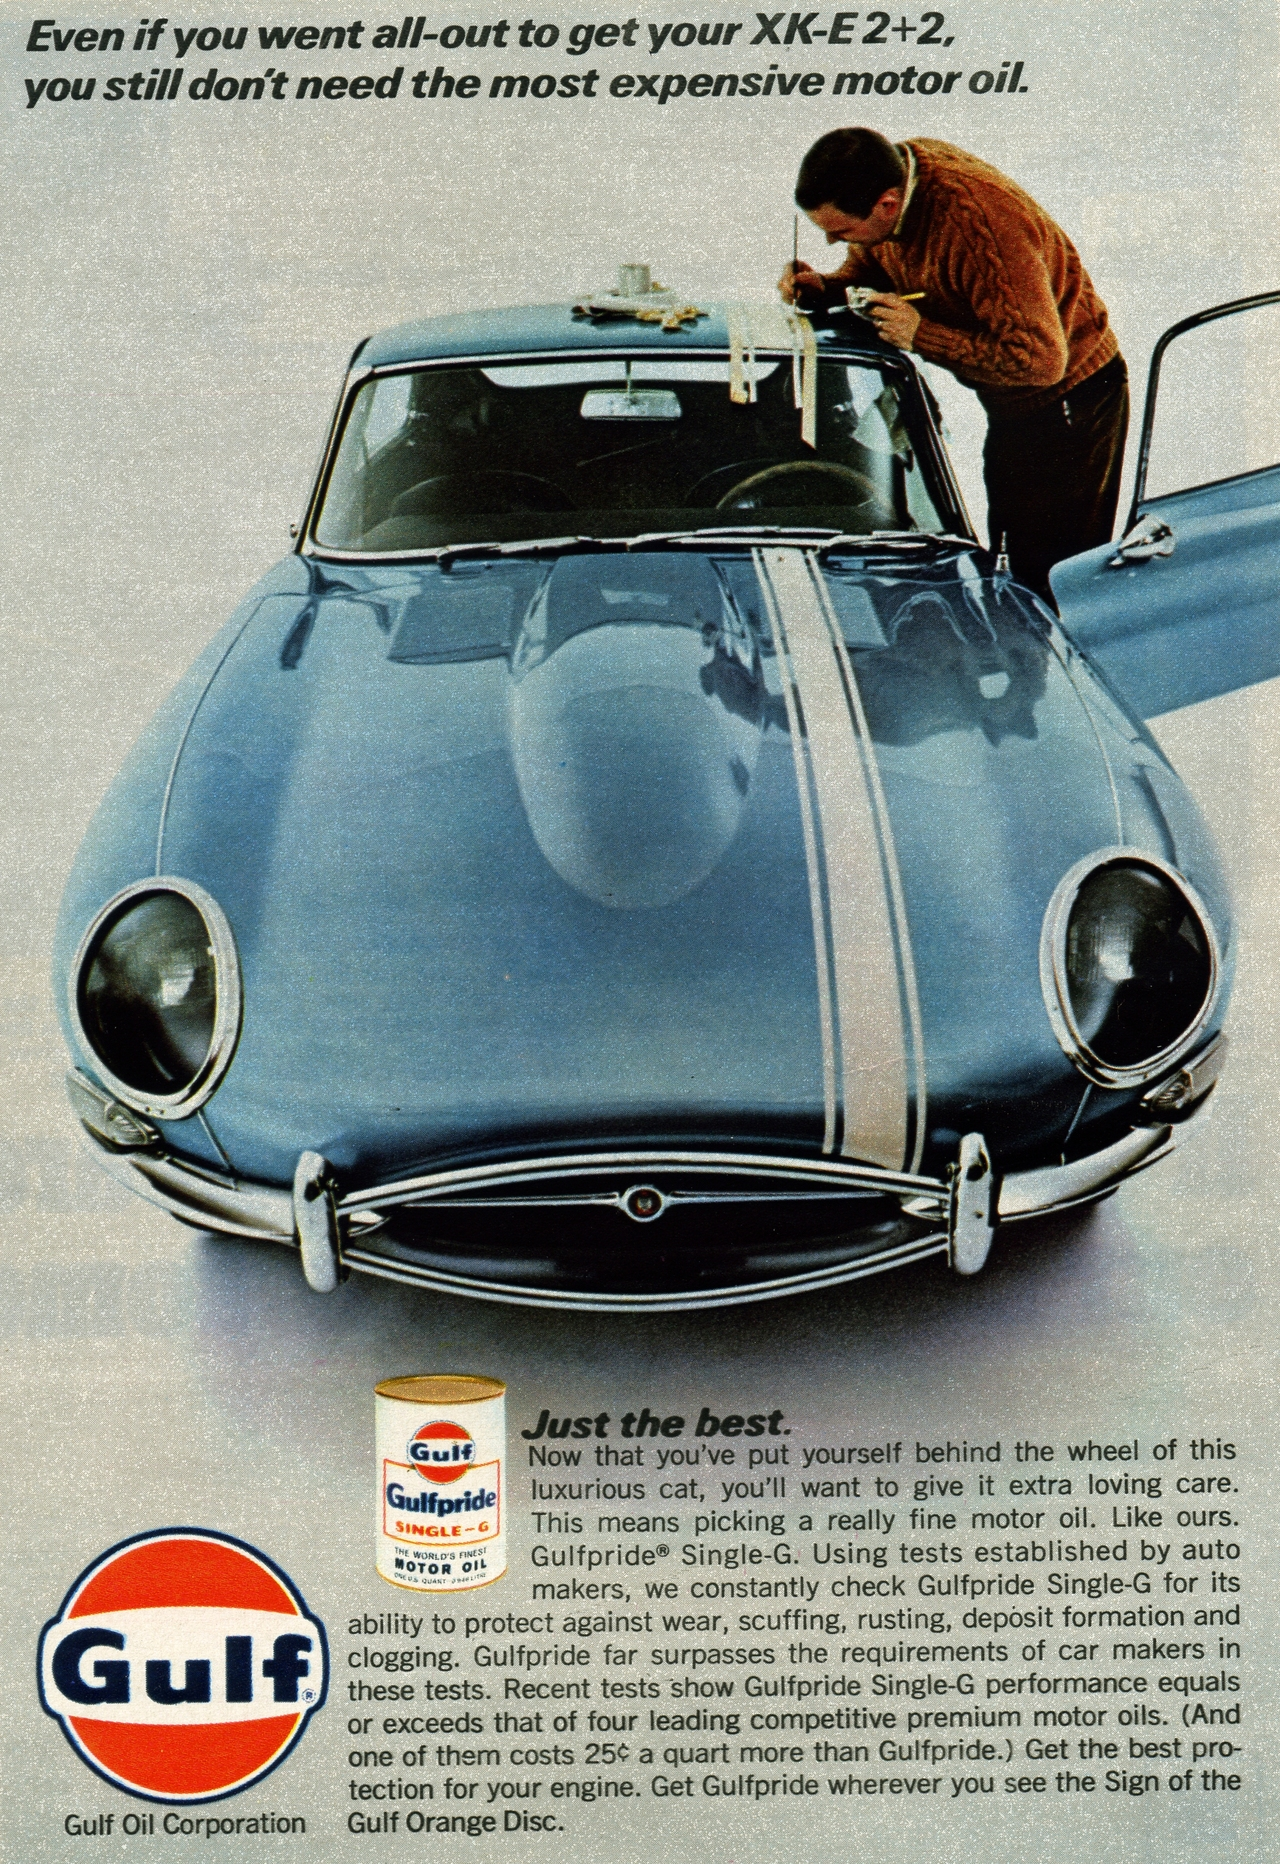 1967 gulf motor oil advertisement photo picture for Motor oil for older cars